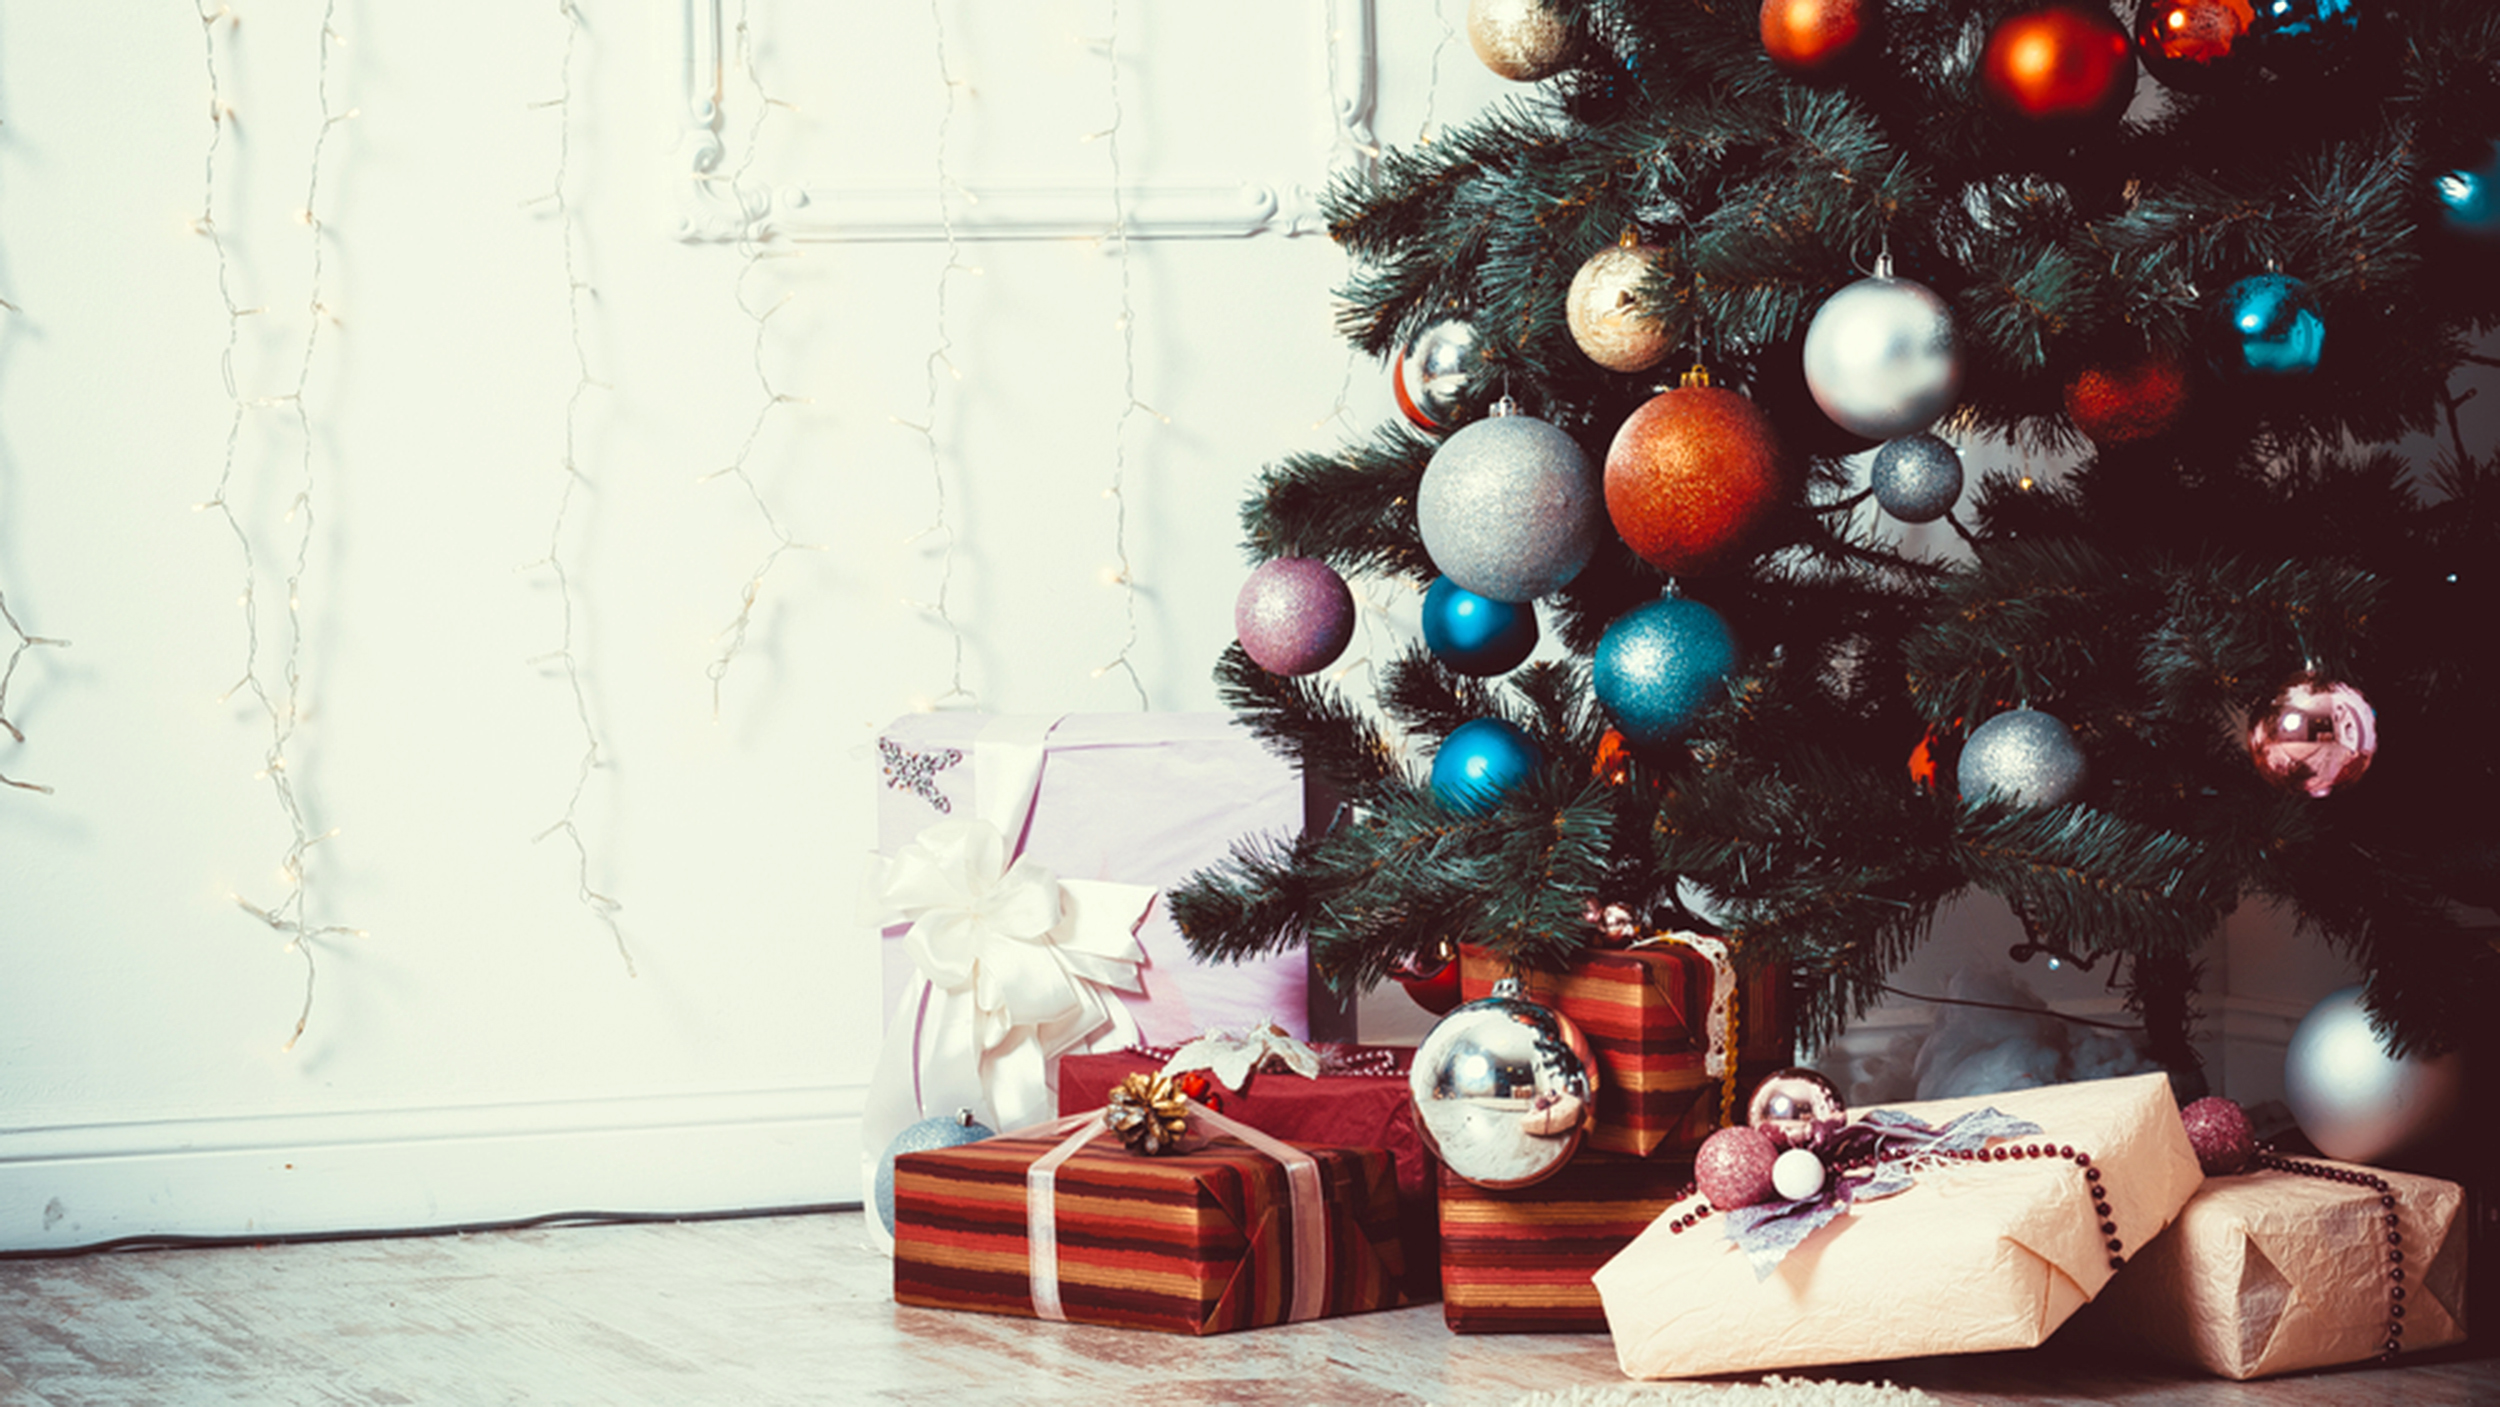 [Image: christmas-tree-presents-stock-today-1512...7bdae9.jpg]